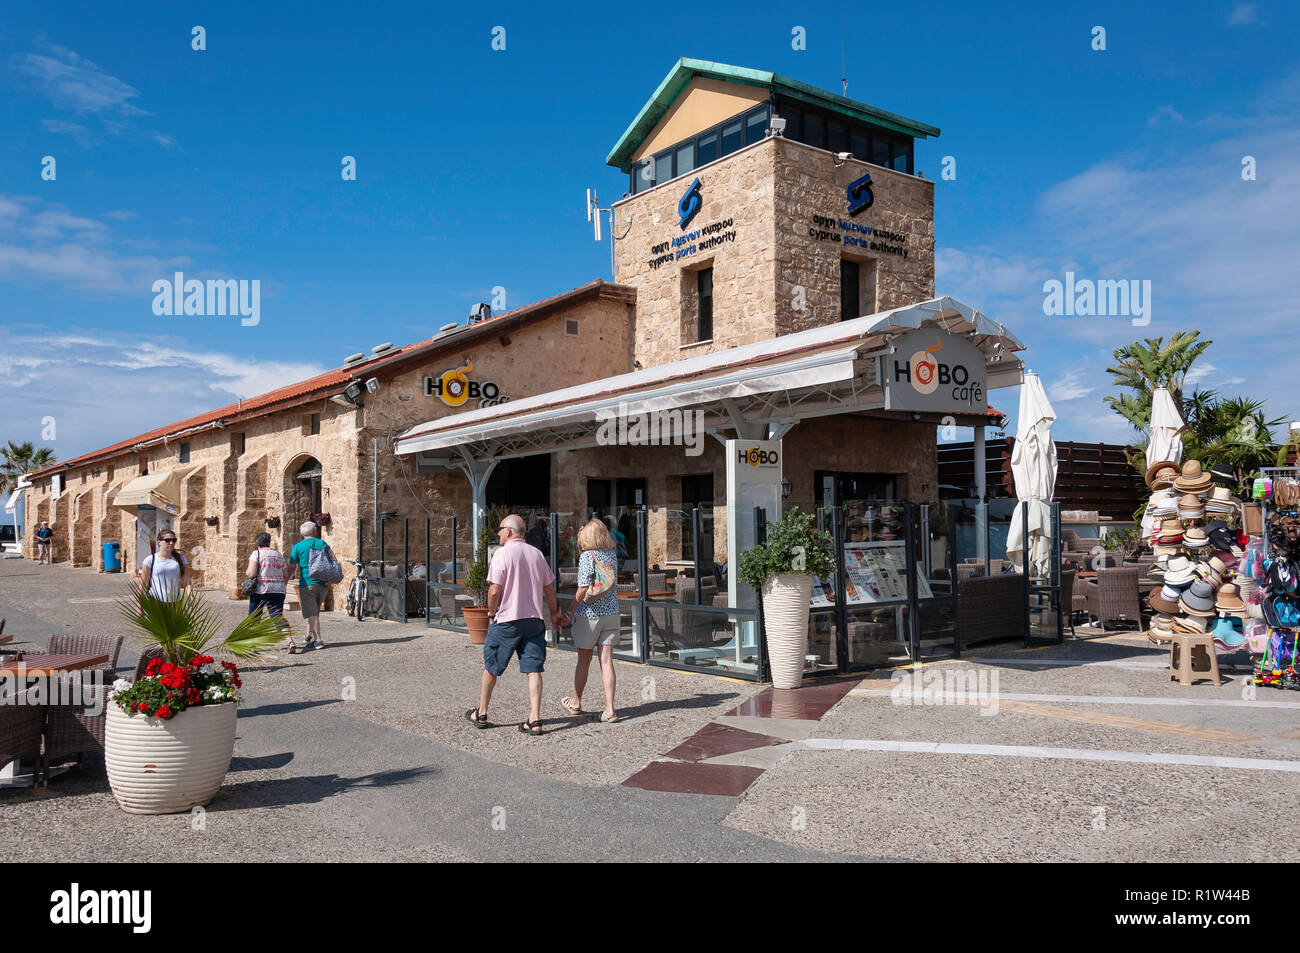 Cyprus Ports Authority building and Hobo Cafe on harbour promenade, Paphos (Pafos), Pafos District, Republic of Cyprus - Stock Image